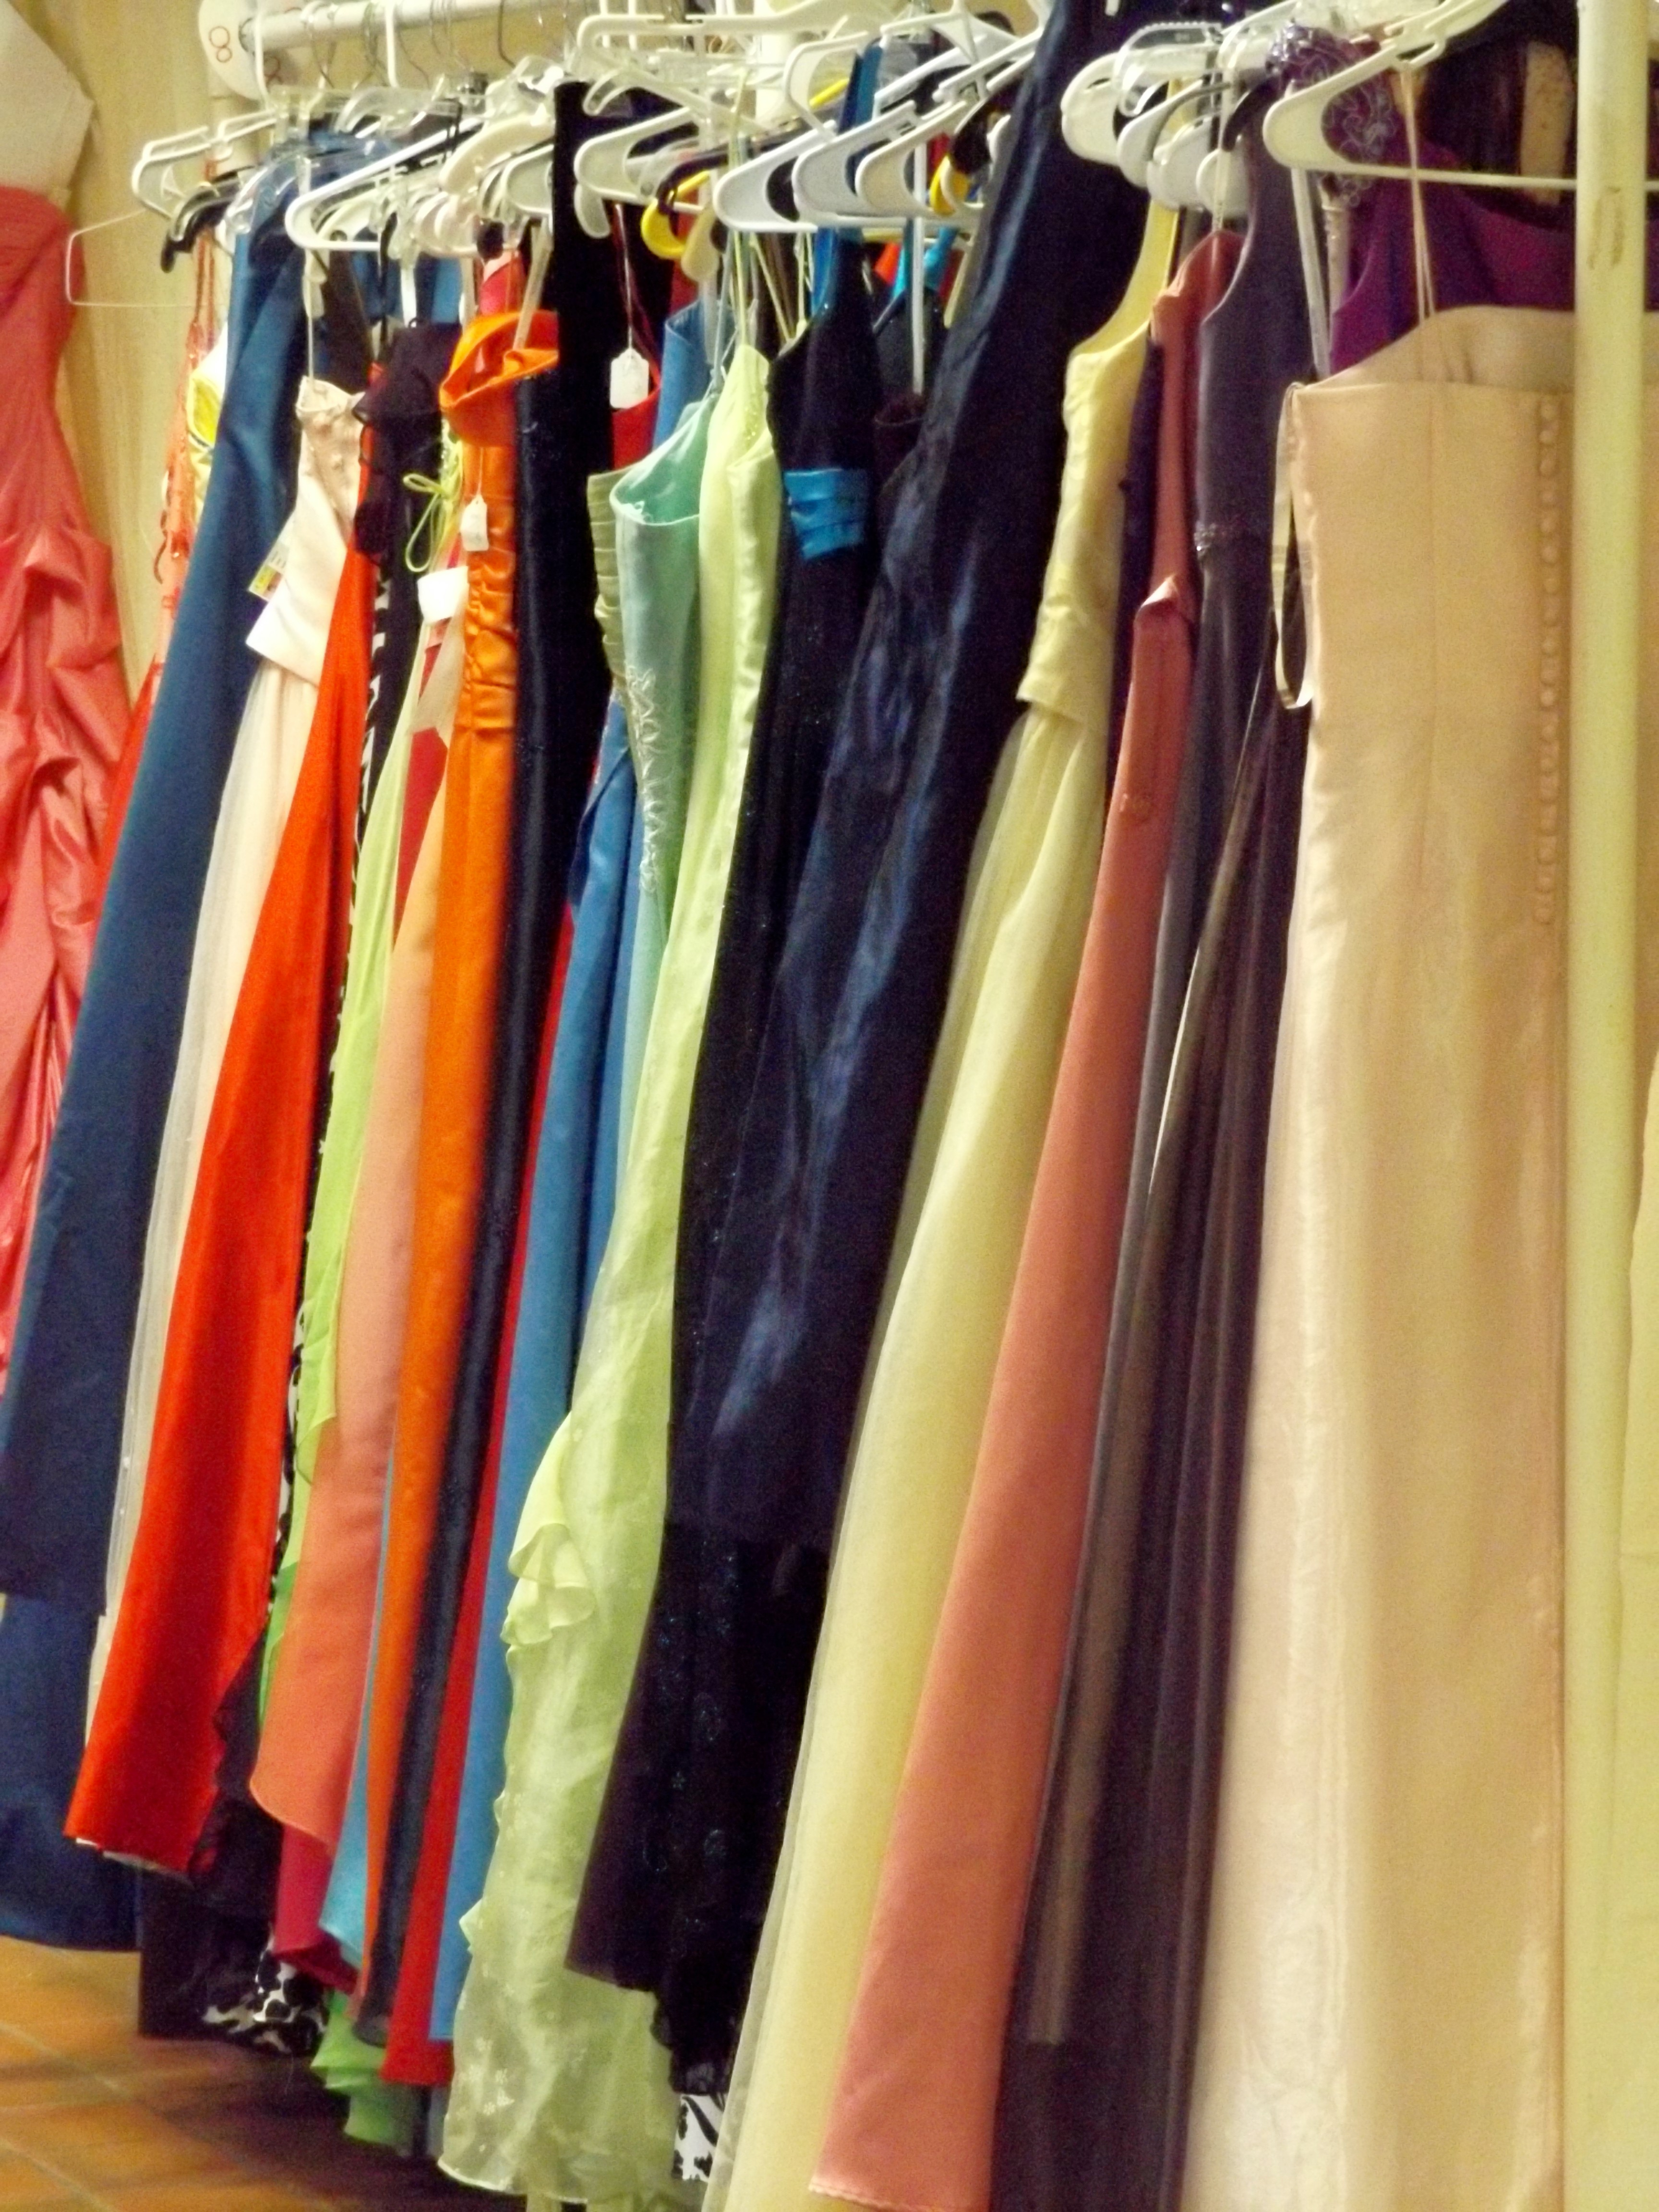 Hill students to host Prom Dress Swap